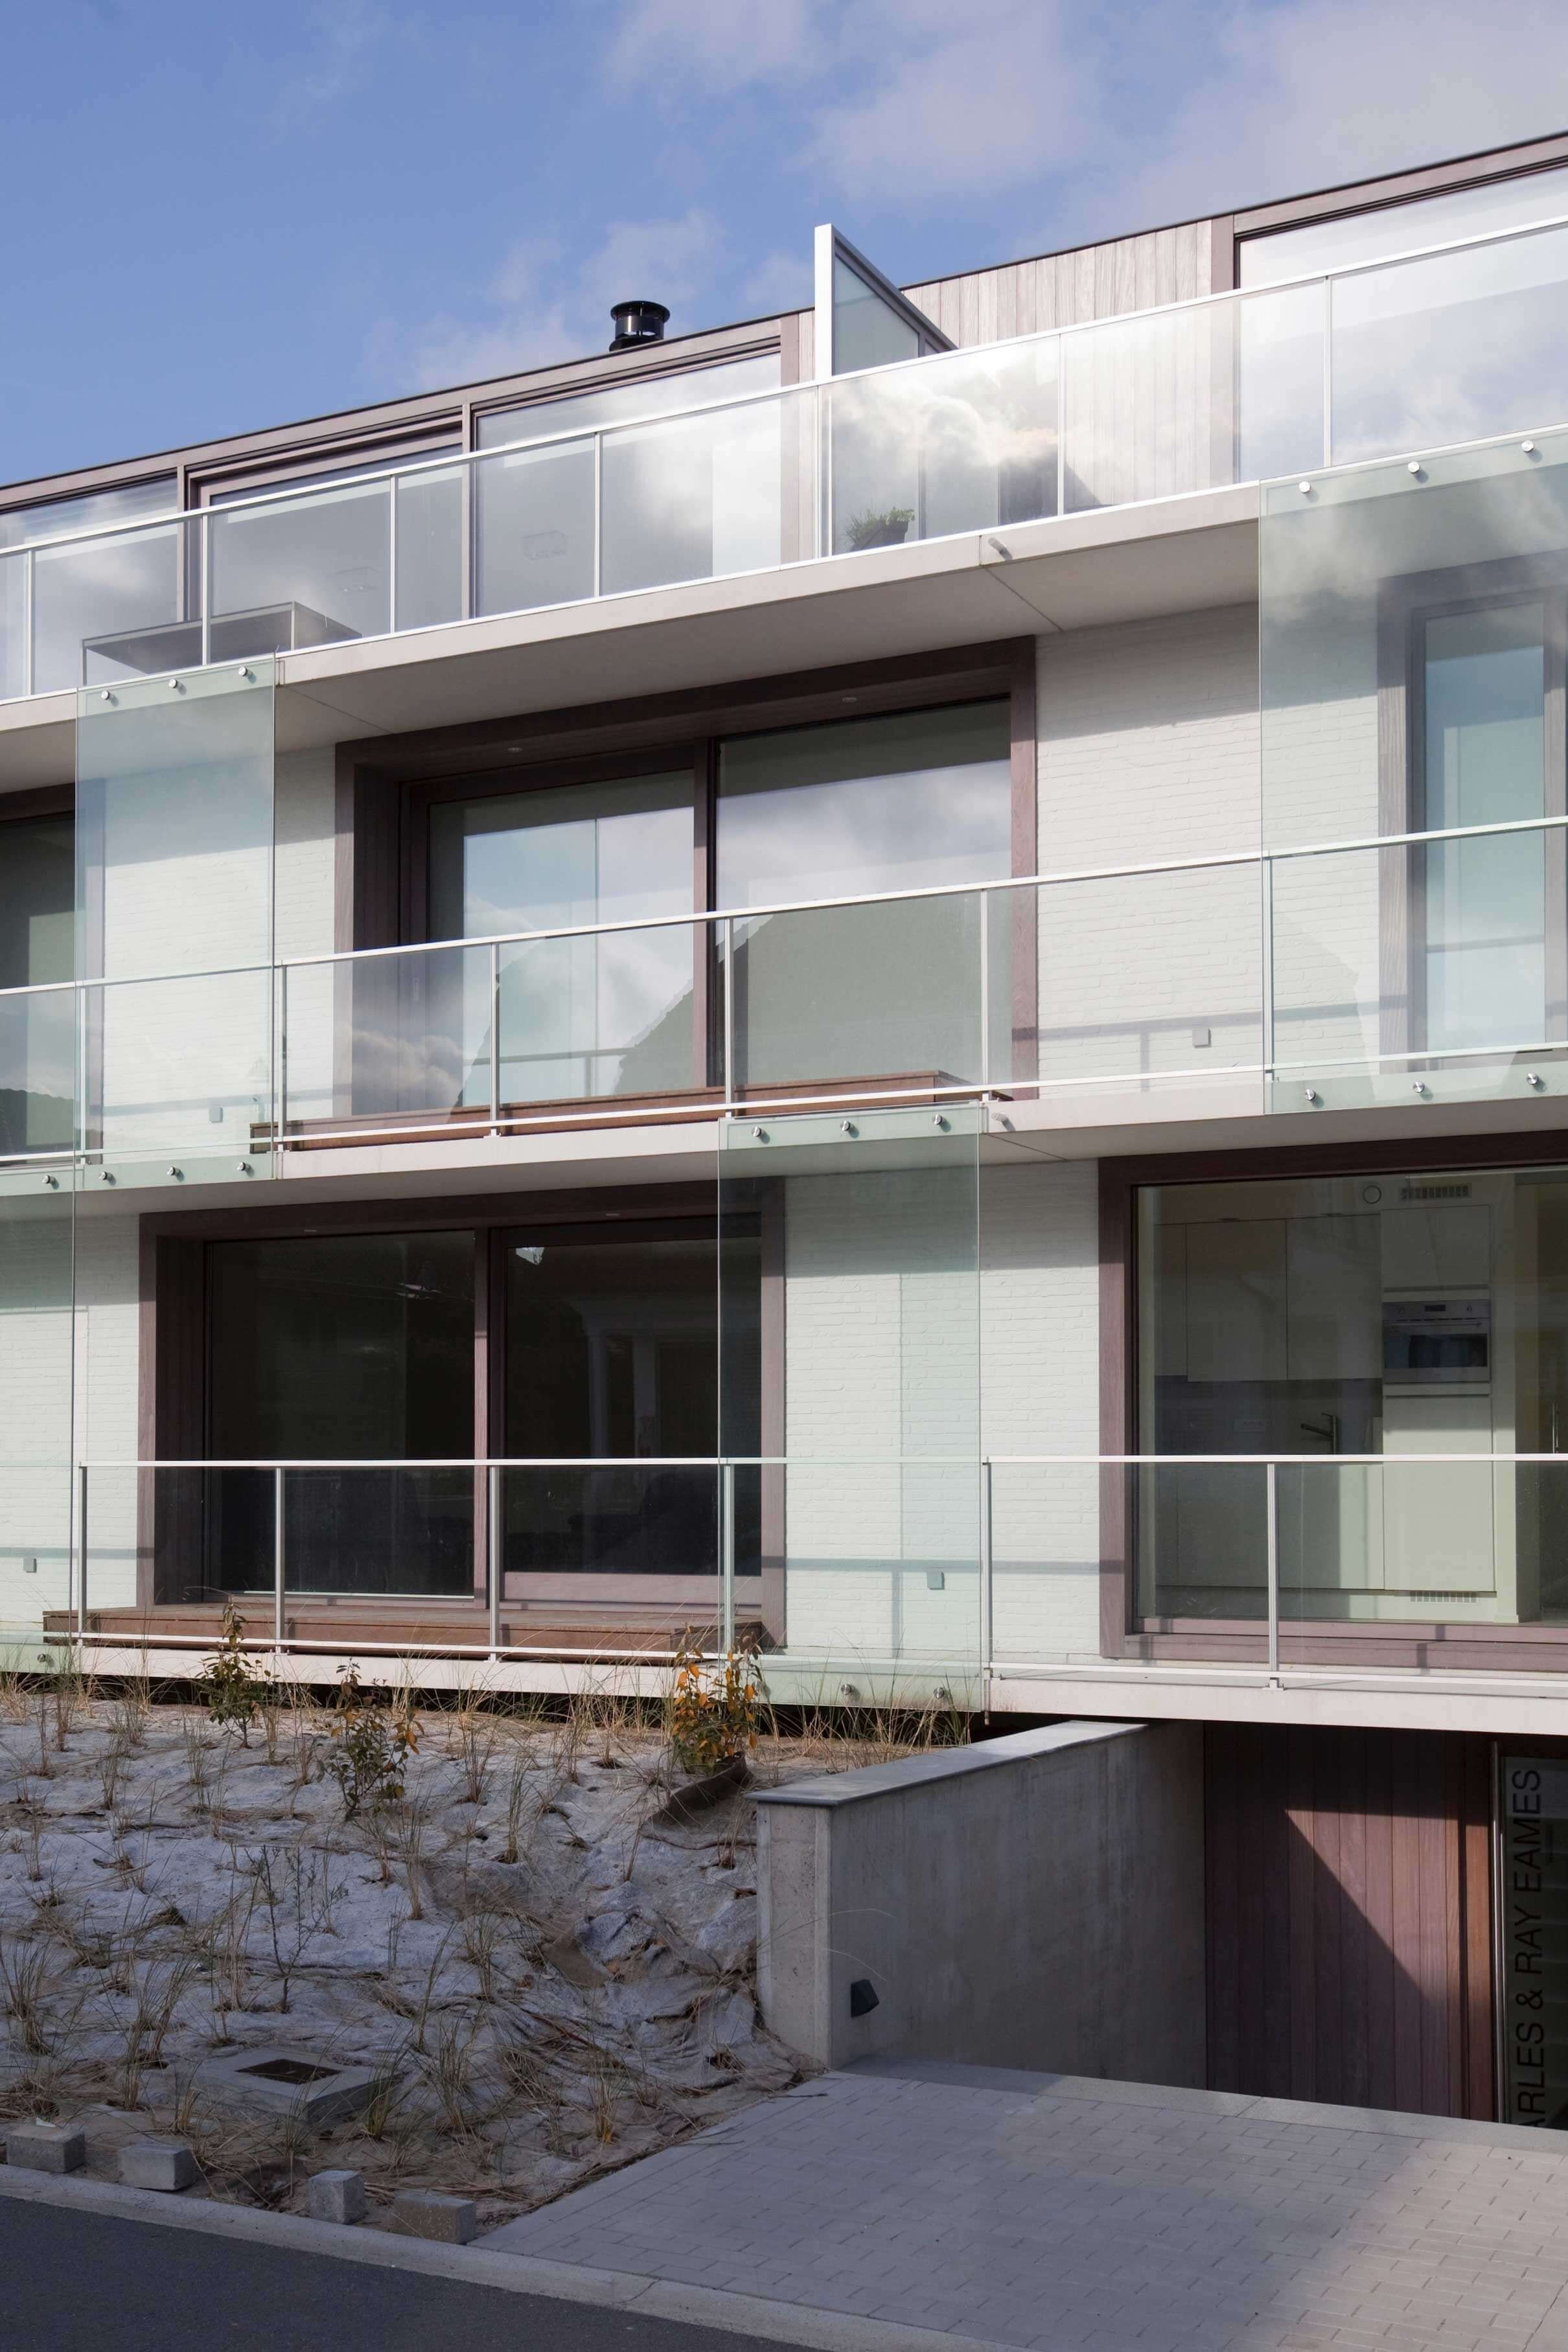 Rietveldprojects.be-Eames-appartement-design-architectuur-kust23